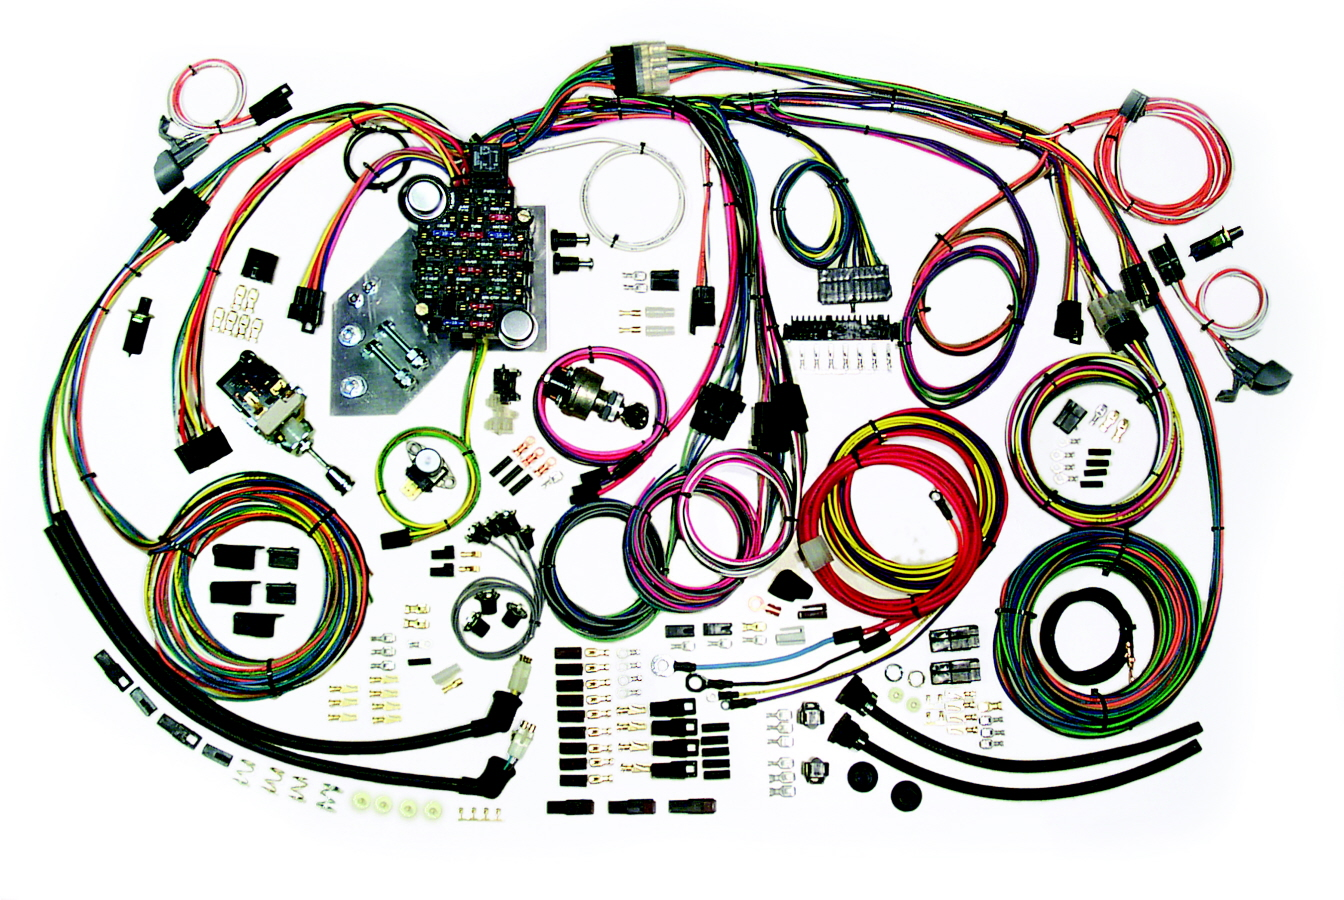 l_500467 wiring harness kits by american autowire f1 wiring harness at bakdesigns.co